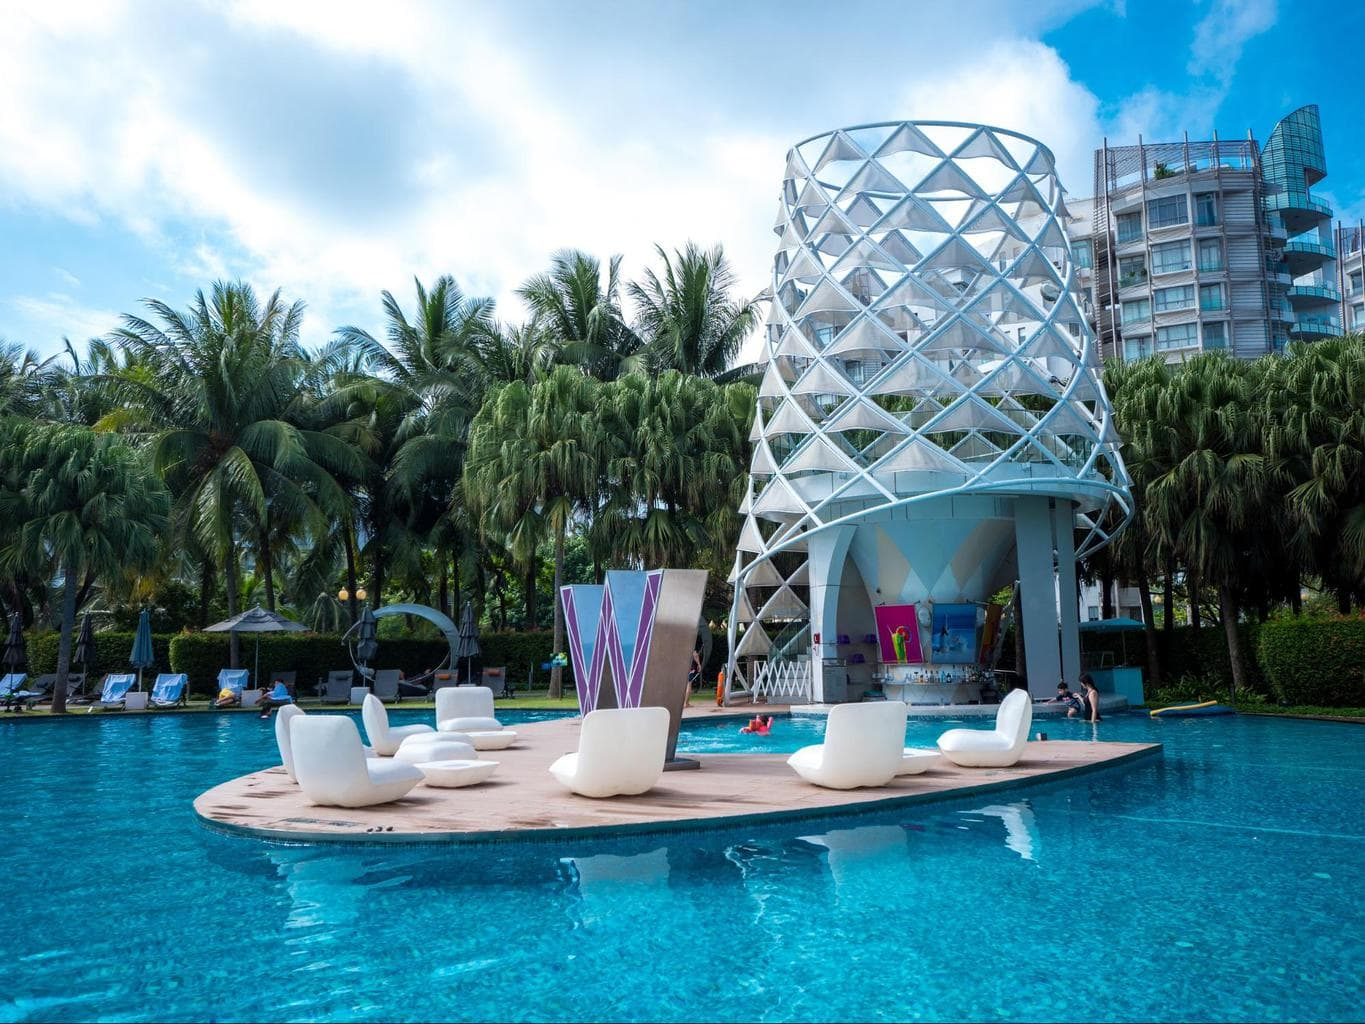 The pool area and swim up bar at the W Singapore - Sentosa Cove